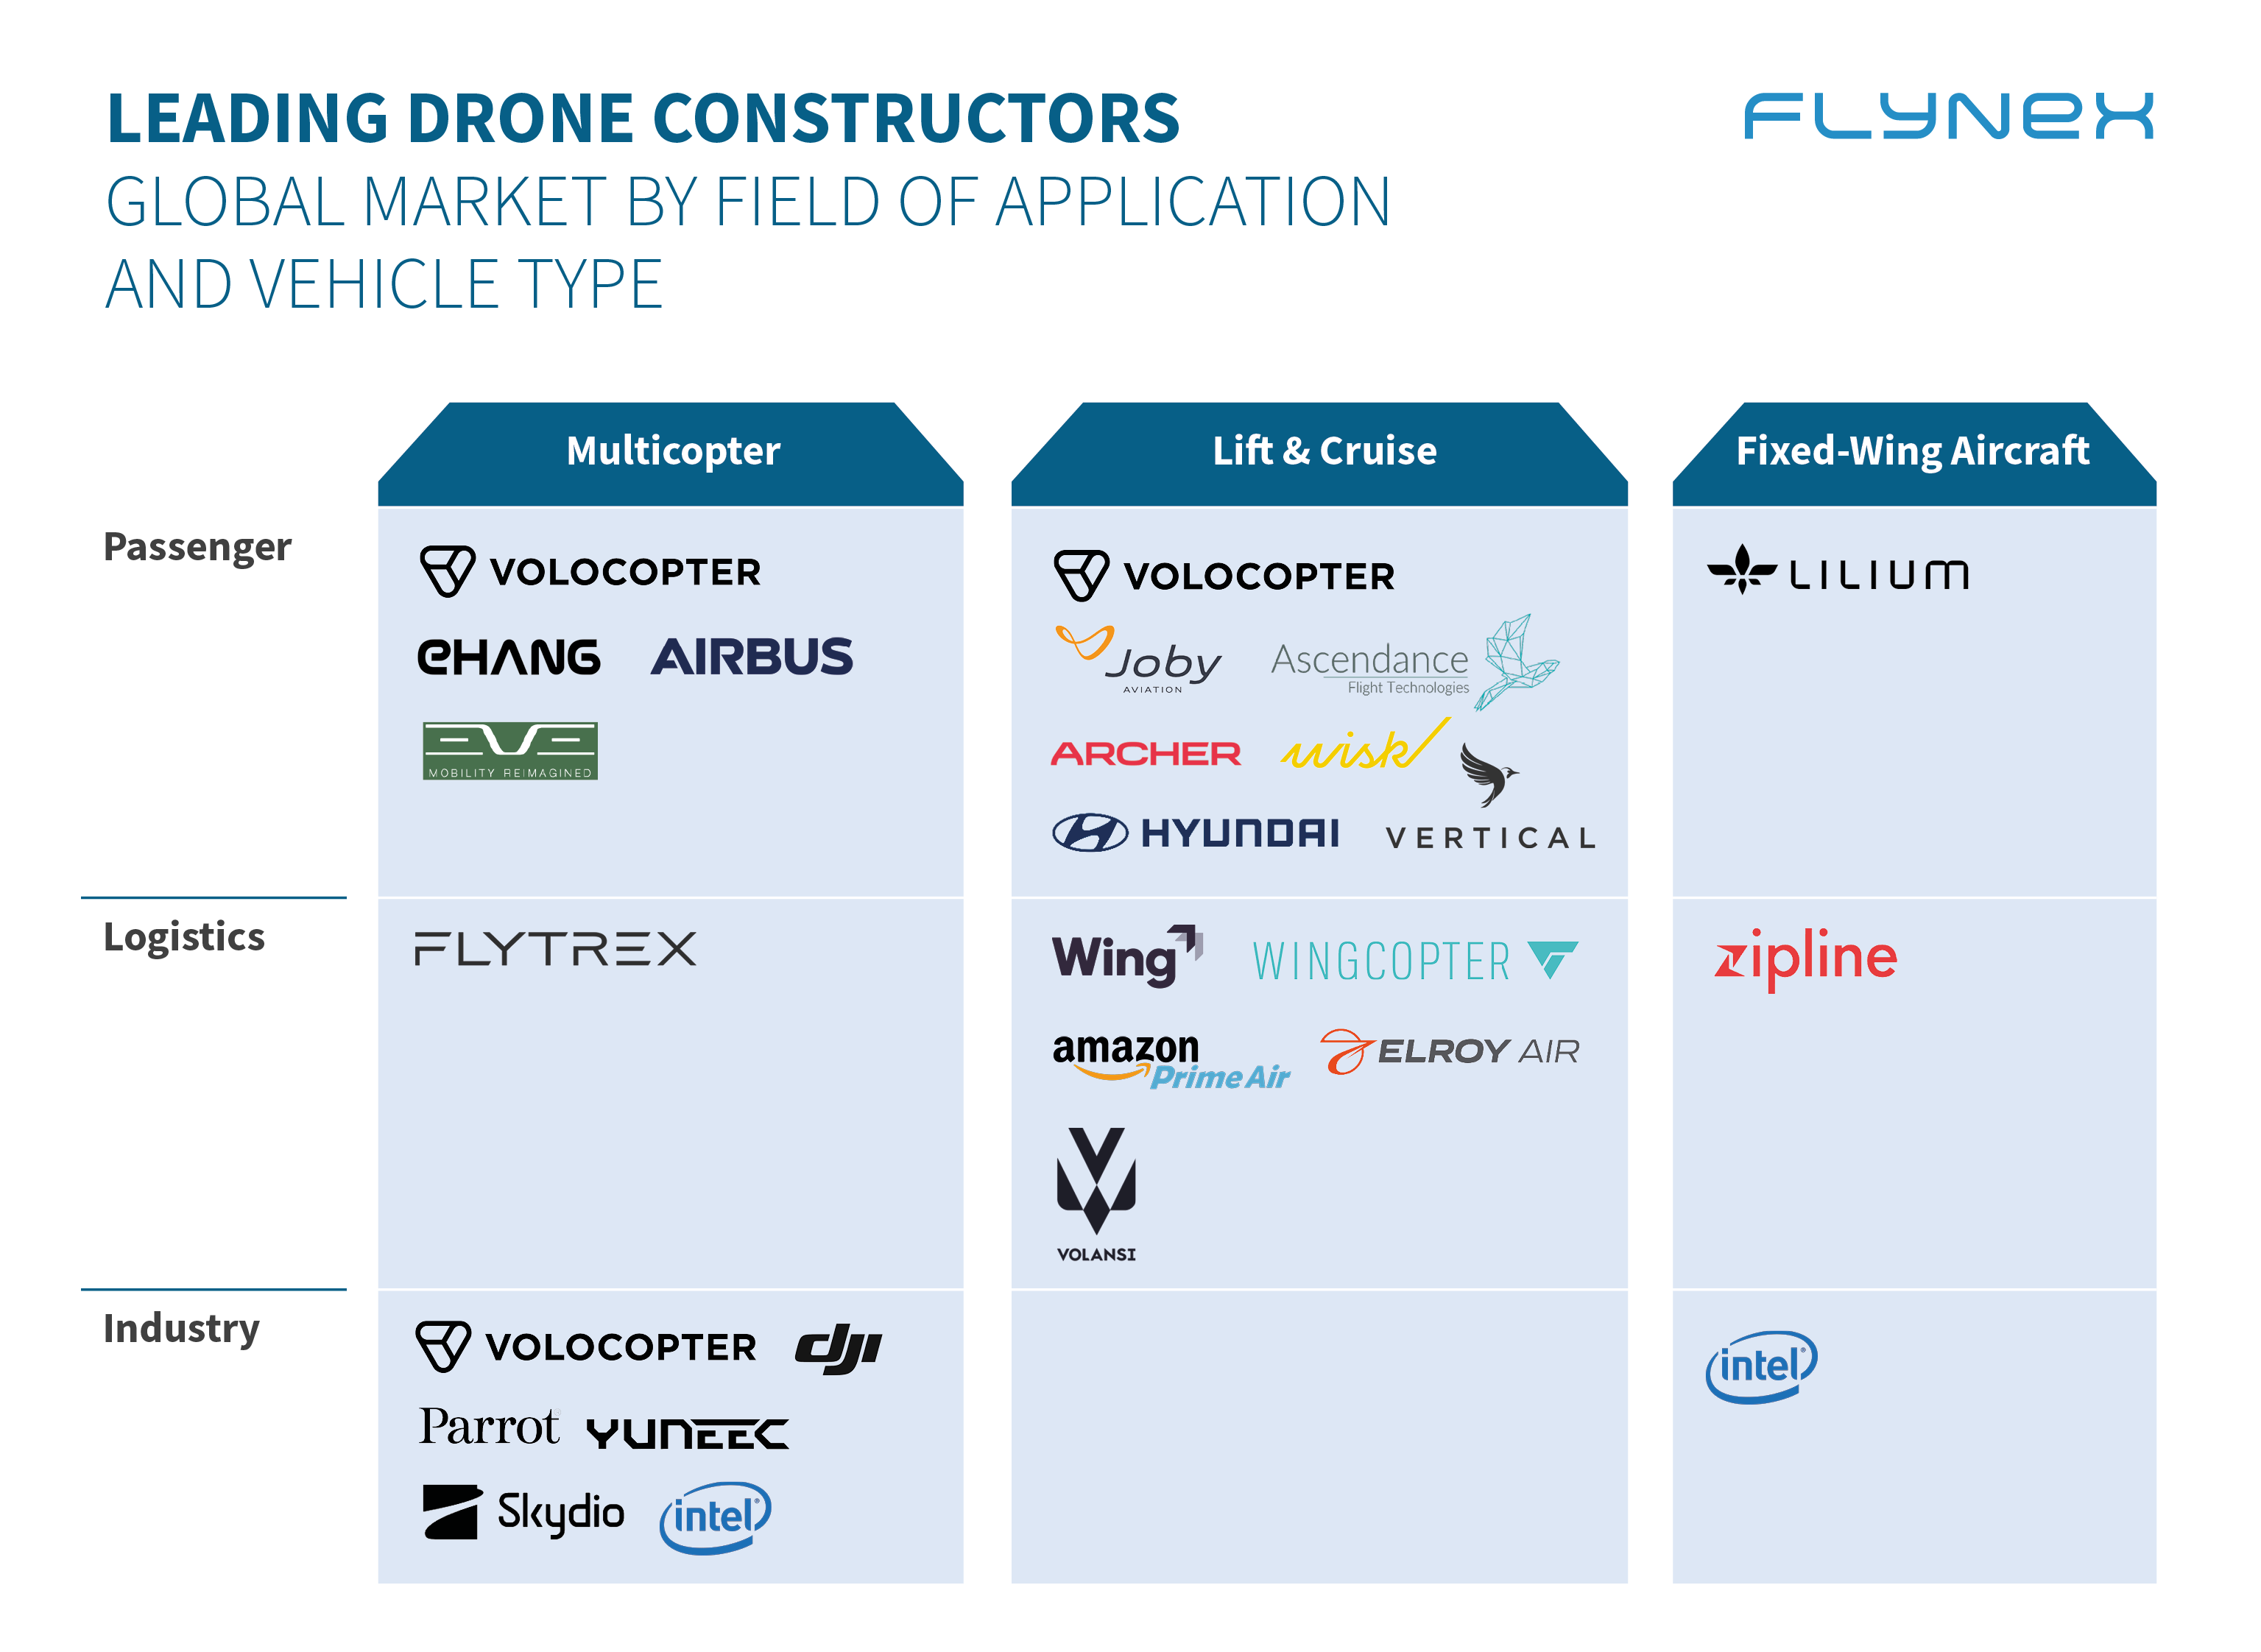 Overview leading drone constructors worldwide